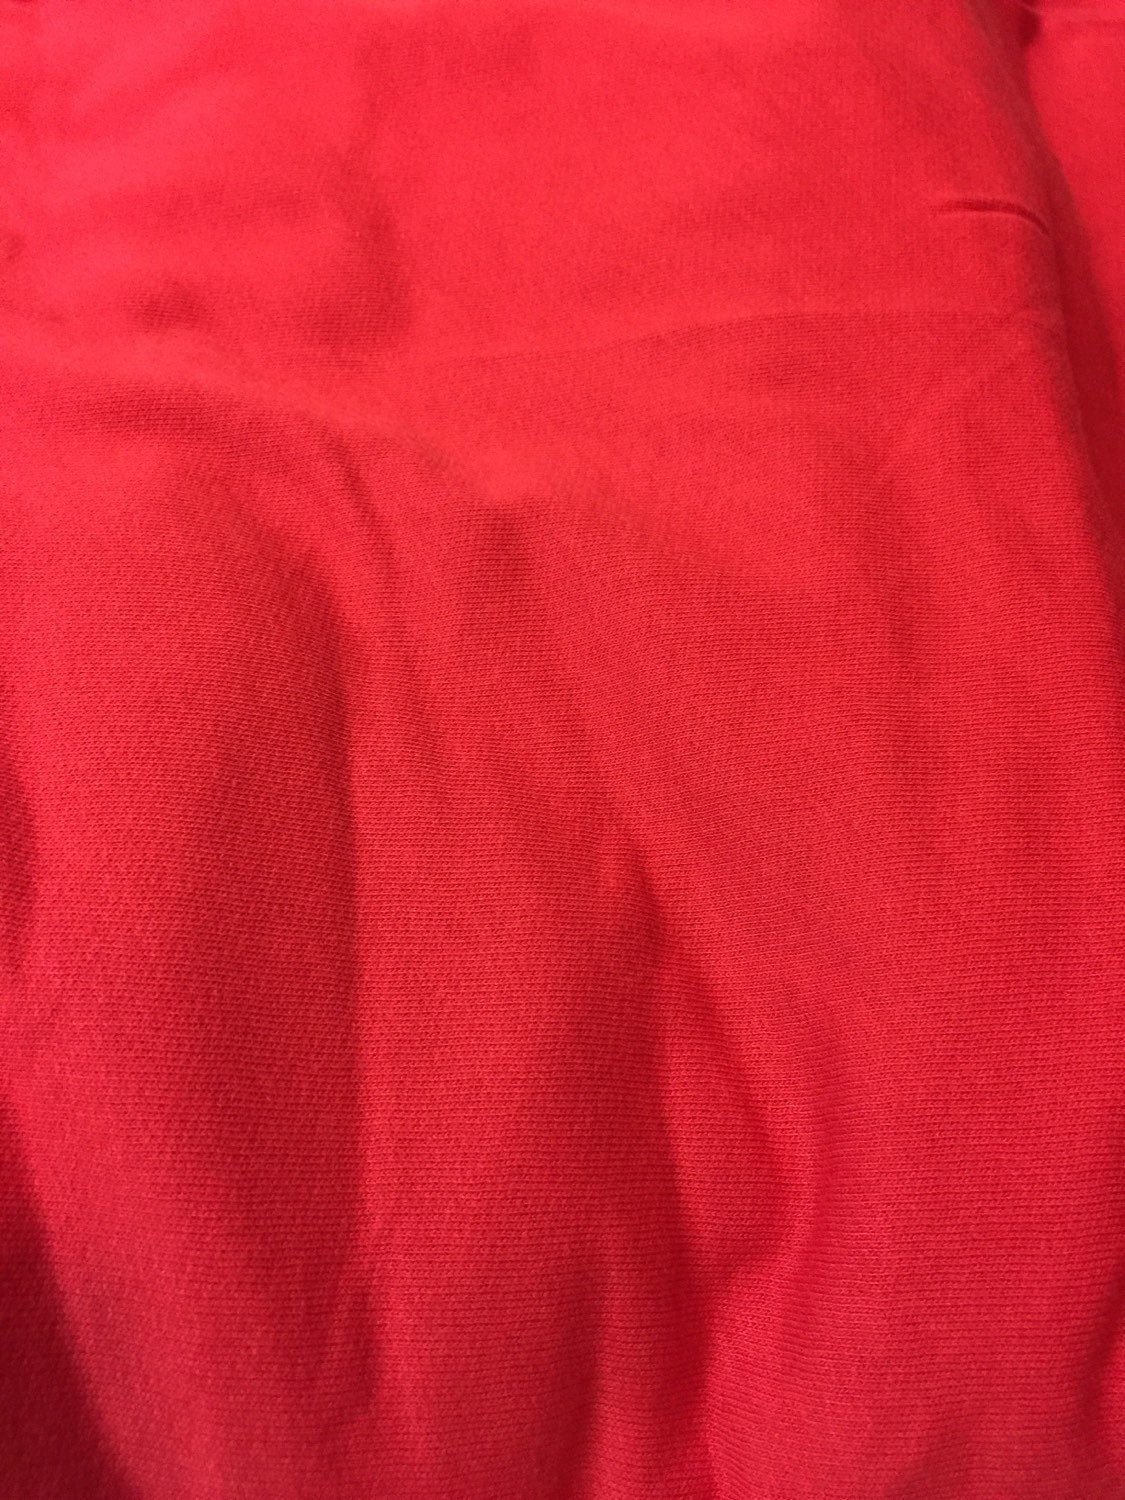 Rose red cotton jersey sweatshirt fleece knit fabric from for Constellation fleece fabric